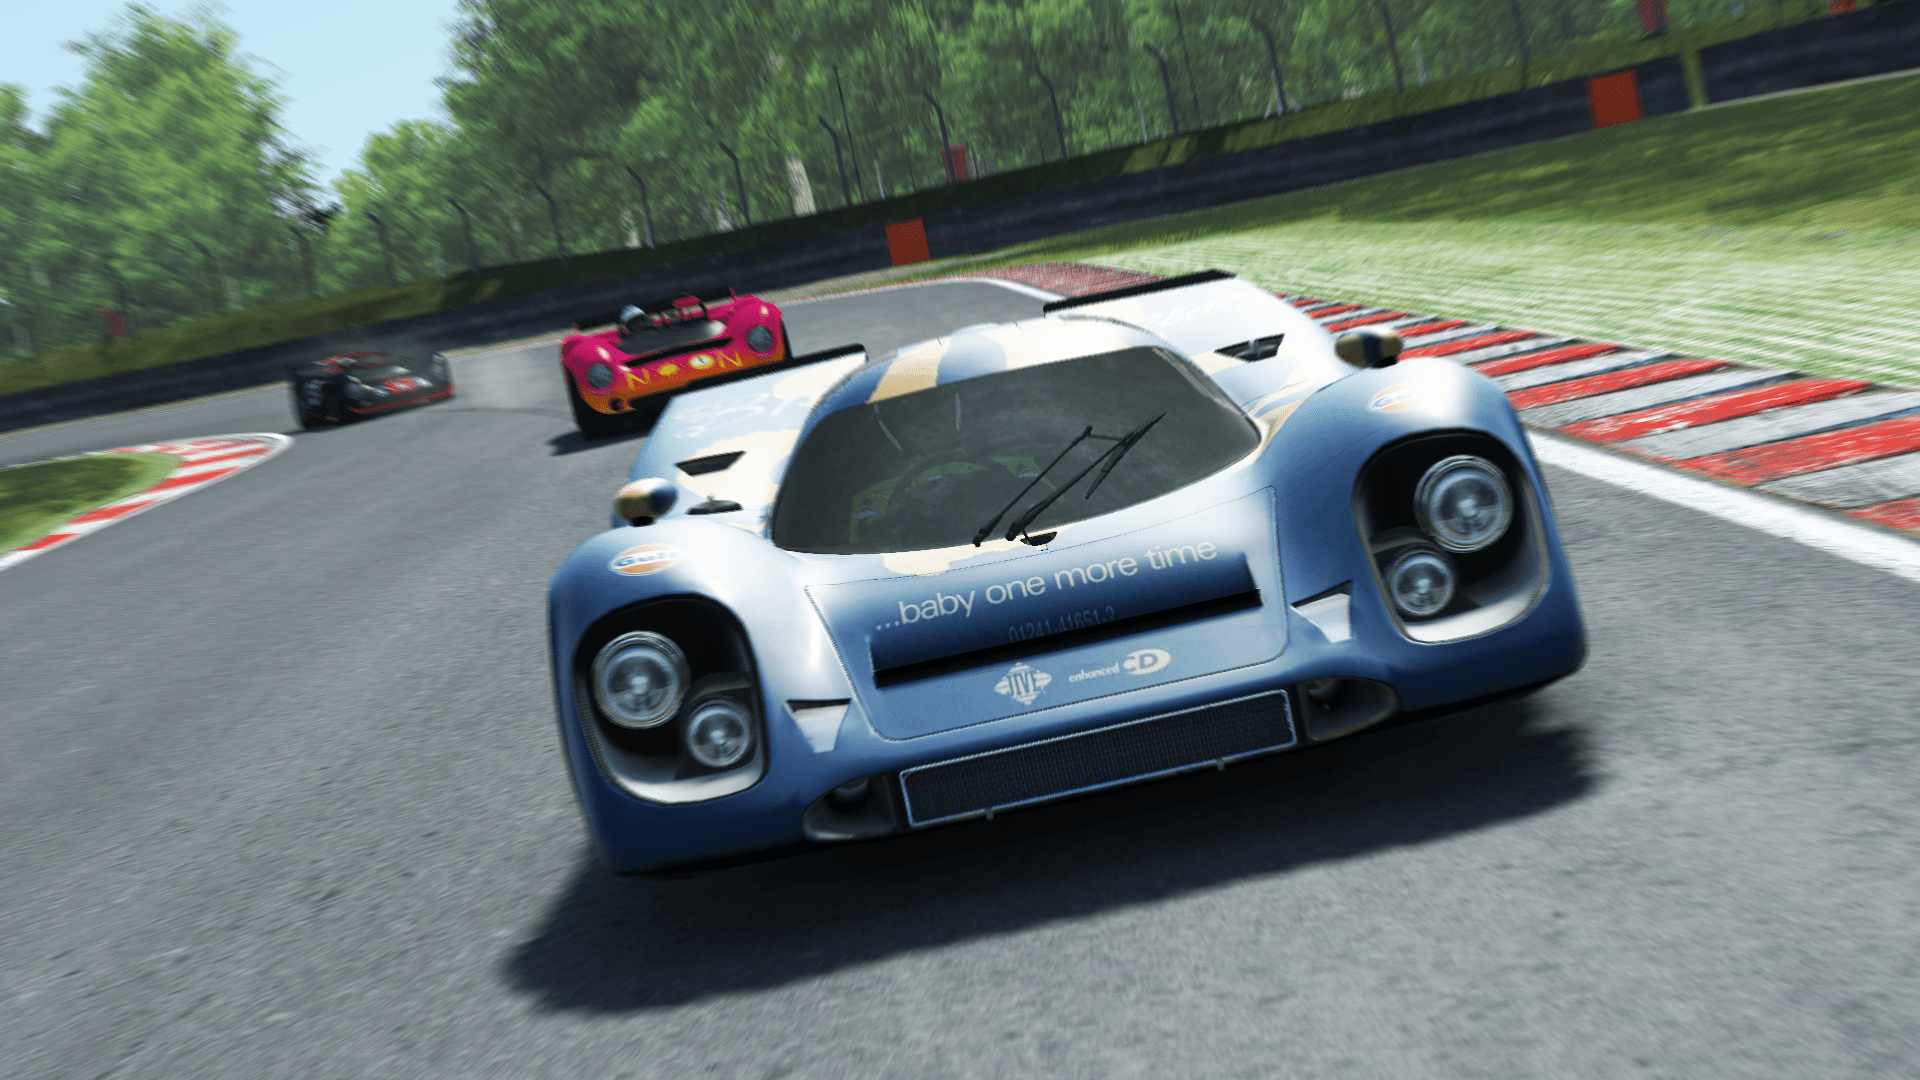 Colin Moore (Porsche) being hunted by Yassin Marzoug (Lola) behind.